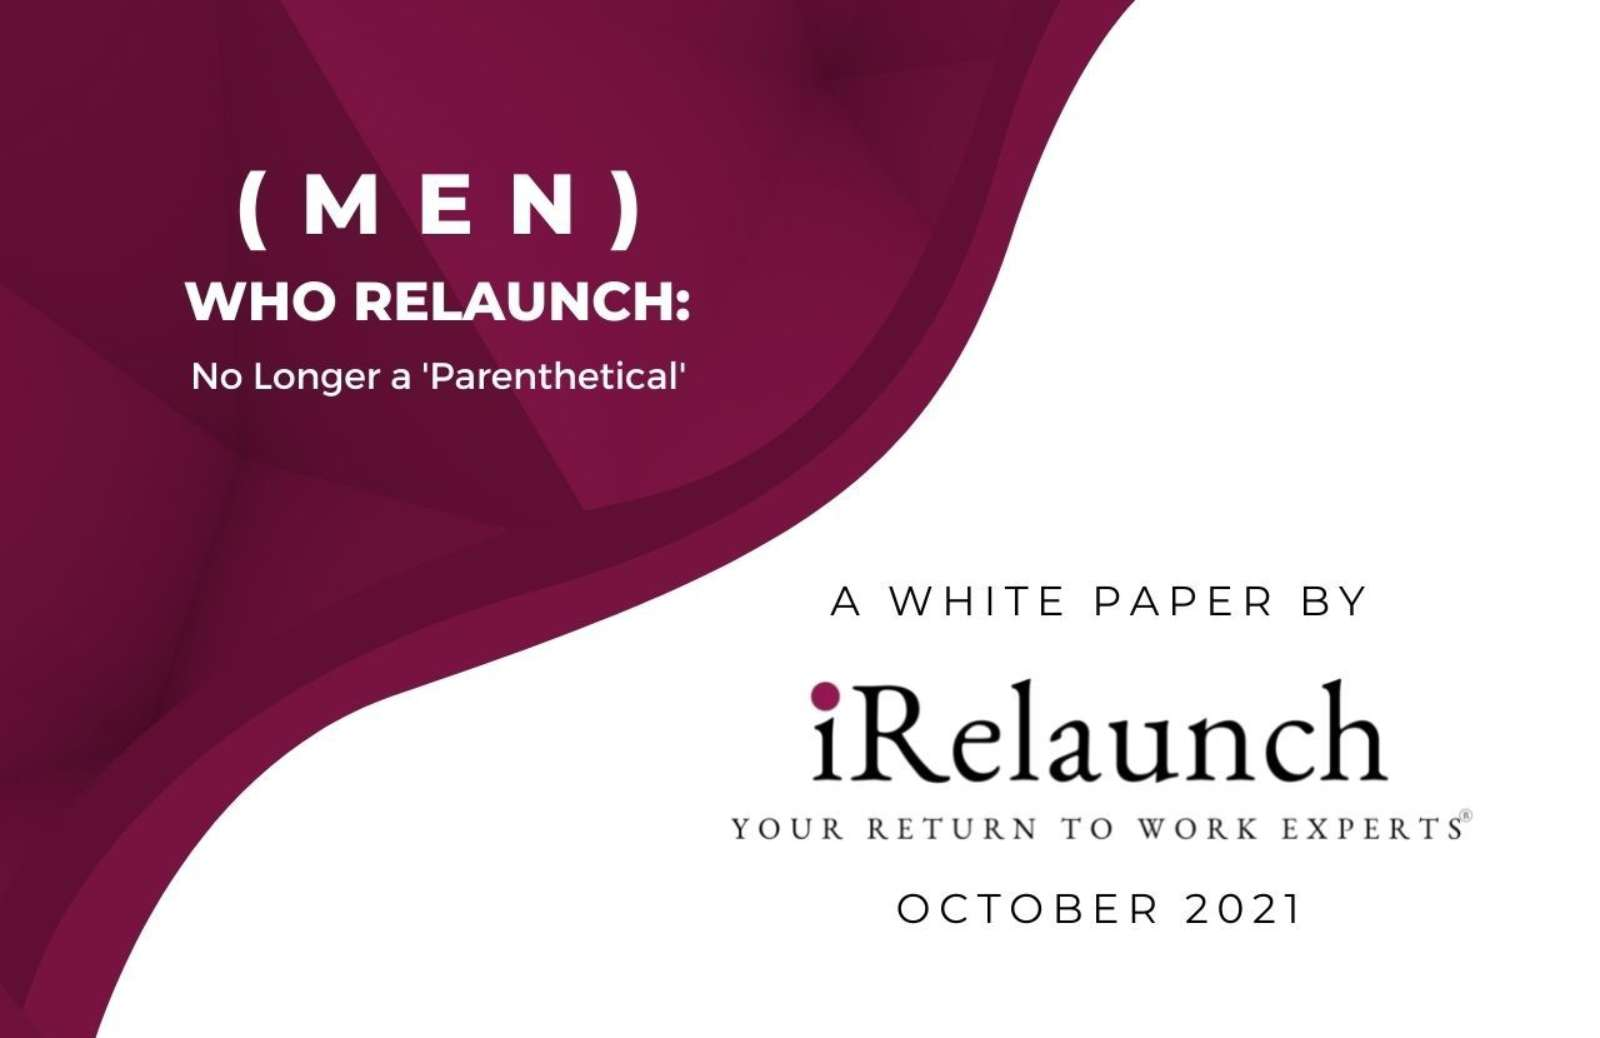 A promotional image for iRelaunch's October 2021 white paper entitled: (Men) Who Relaunch: No Longer a 'Parenthetical'